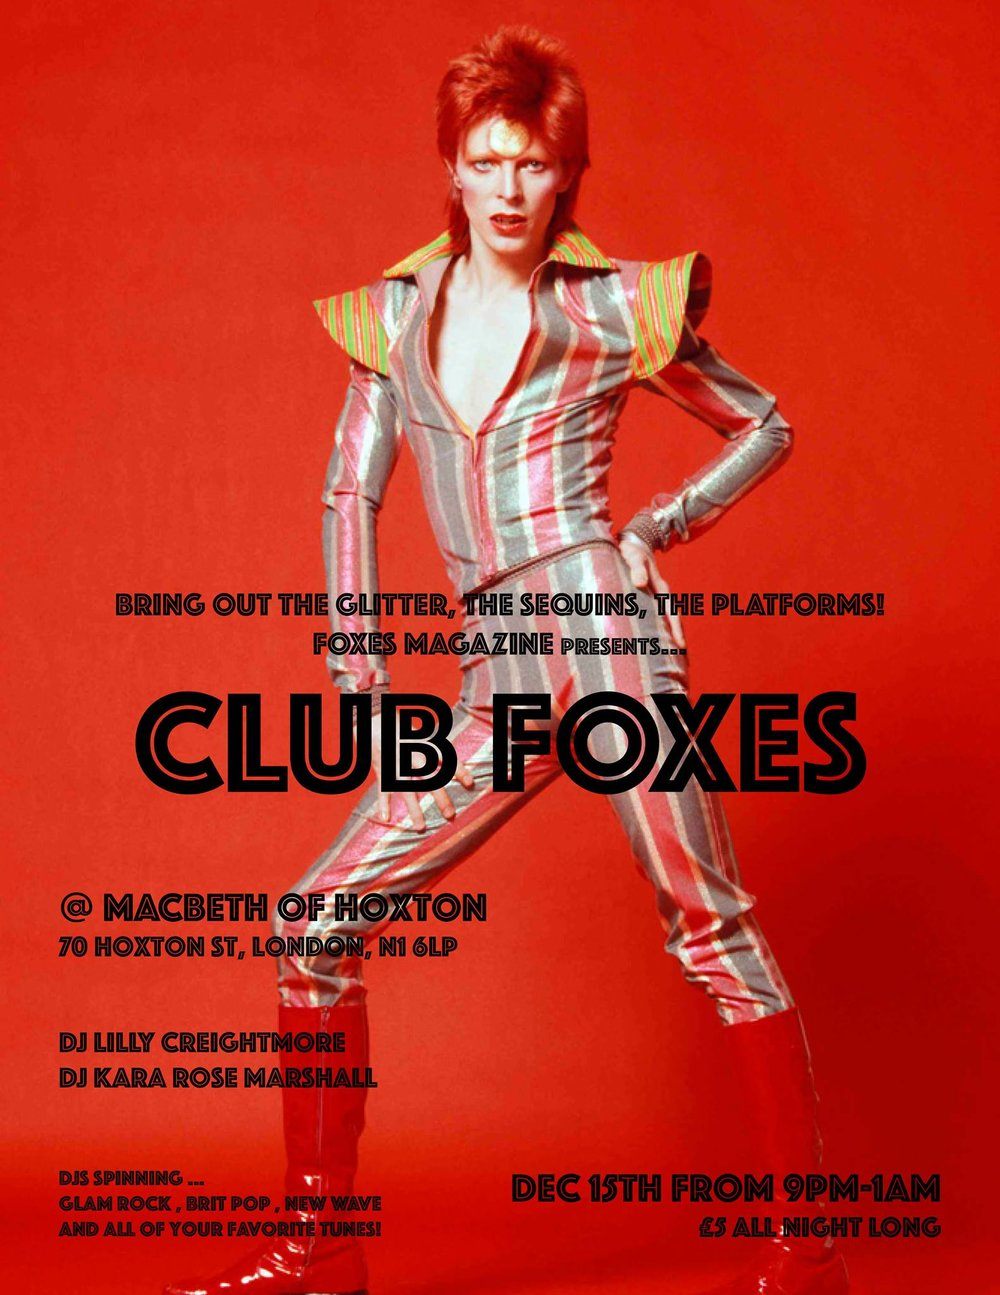 FOXES Magazine presents... CLUB FOXES in London at The Macbeth Of Hoxton!!  Bring out the glitter, the sequins, the platforms and get ready to dance to all of your favorite glam rock, brit pop and 80s tunes! DJ Lilly Elizabeth Creightmore DJ Kara Rose Marshall £5 entry all night! DAVID BOWIE - T.REX - SWEET - IGGY POP & THE STOOGES - THE VELVET UNDERGROUND - PULP - BLUR - OASIS - SUEDE - BRYAN FERRY - THE SMITHS - SIOUXIE & THE BANSHEES - THE CURE - BLONDIE - NEW YORK DOLLS - NIRVANA - BAUHAUS - SISTERS OF MERCY - THE CULT - THE DAMNED - DEAD BOYS - SEX PISTOLS - THE RAMONES - THE CLASH - ECHO & THE BUNNYMEN - ALICE COOPER - QUEEN - MADONNA - THE RUNAWAYS - AND MORE